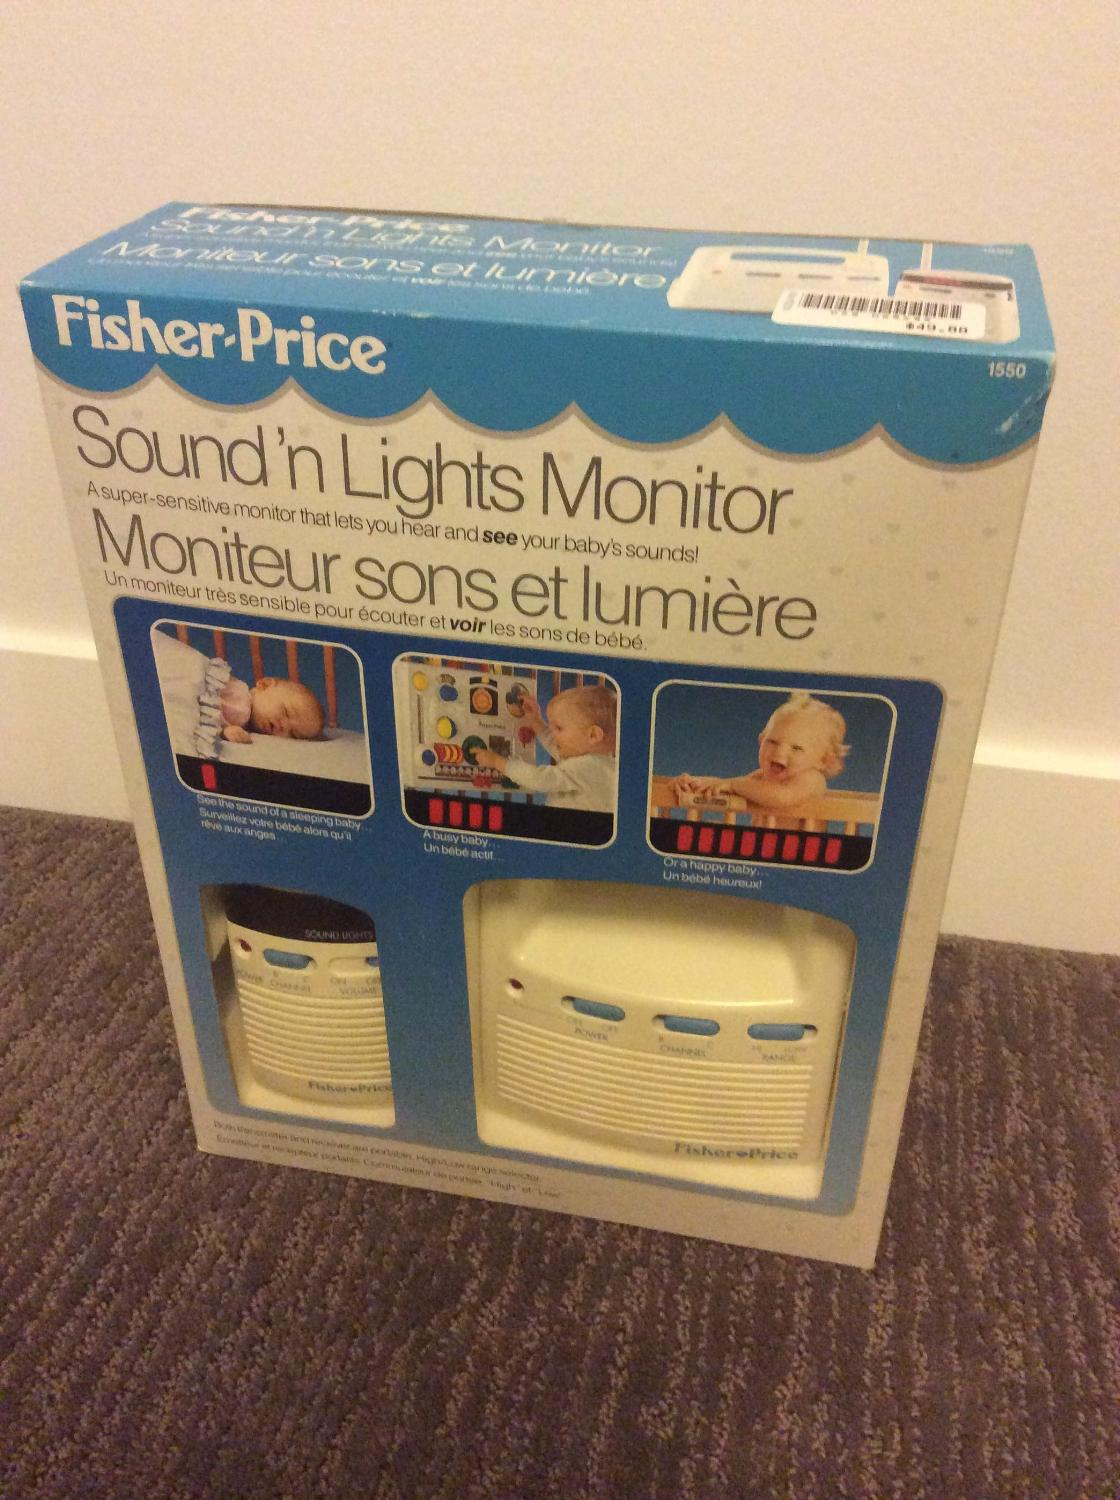 Fisher Price Sounds 'n Lights Monitor